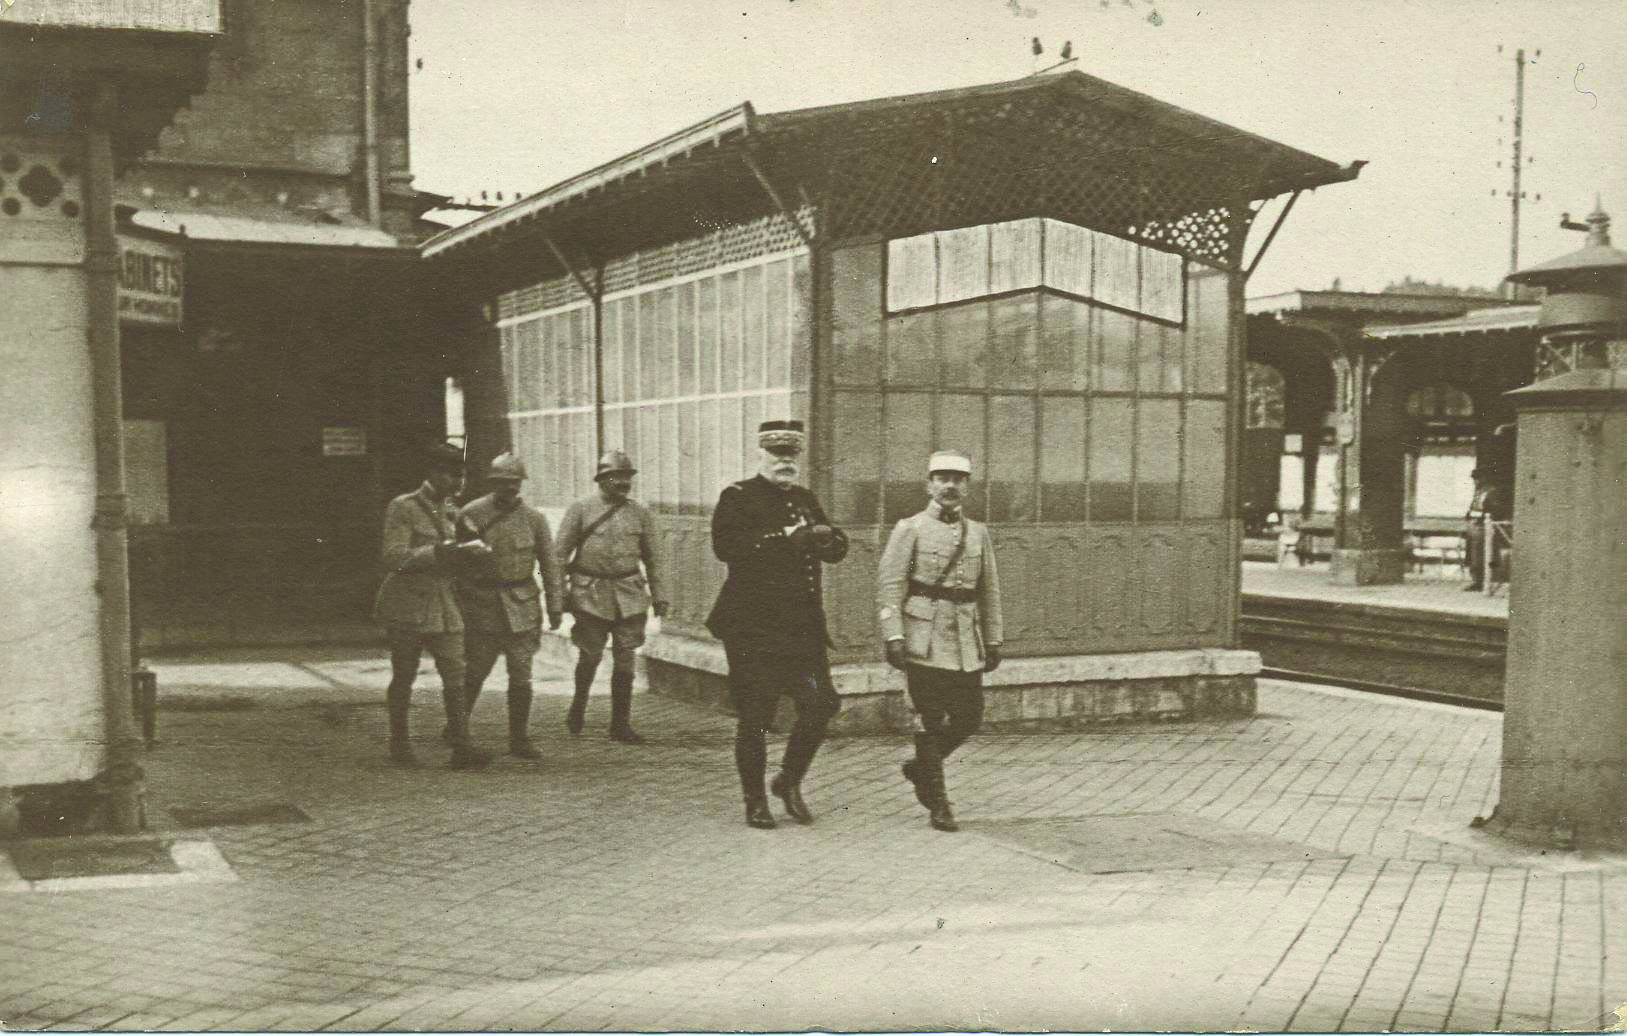 General Joffre and a Colonel Henri at Chantilly railway station in late 1914